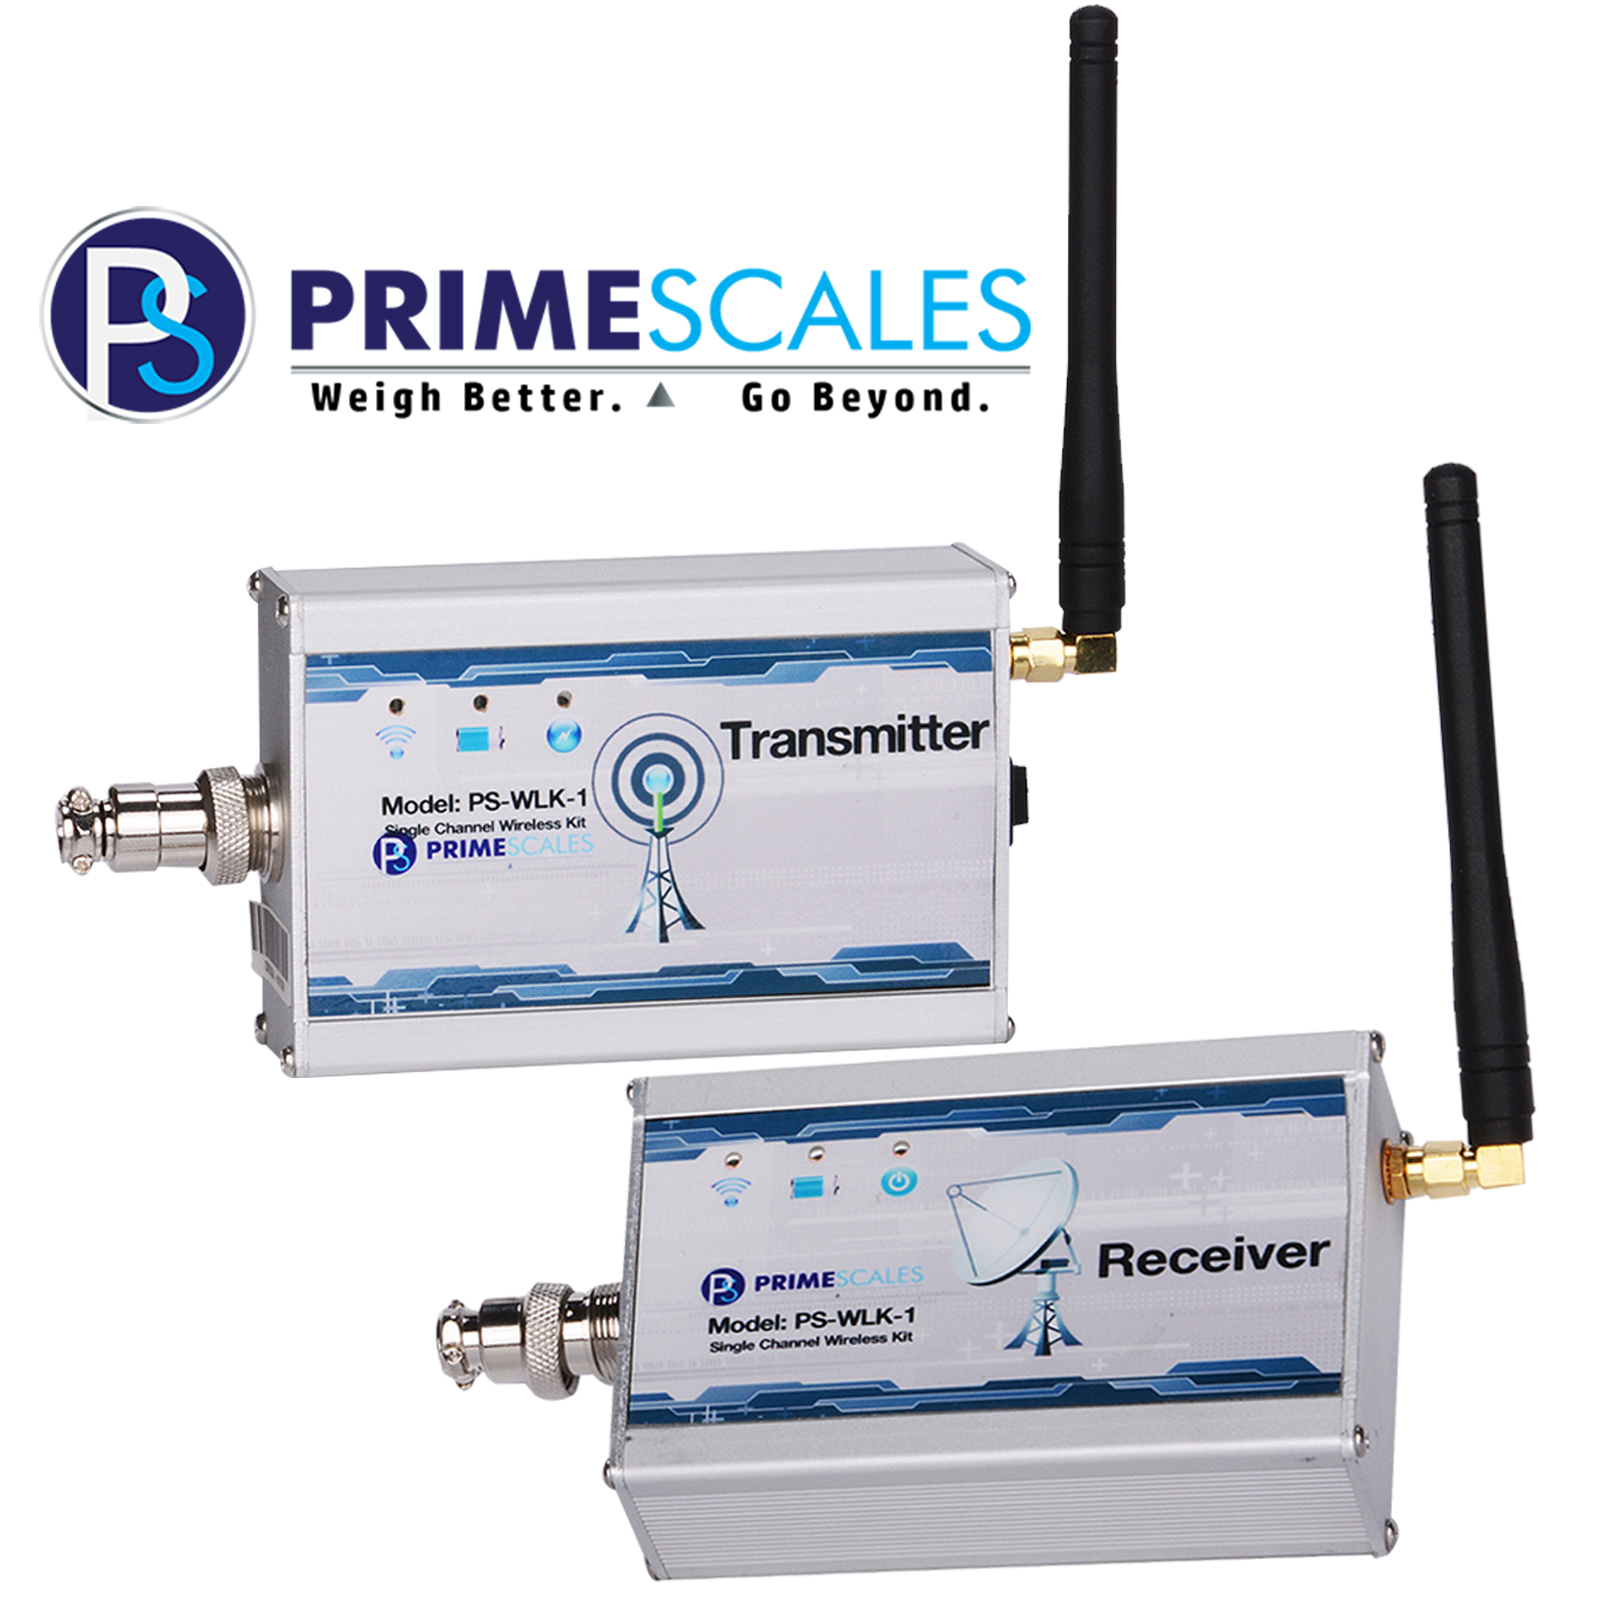 Prime Scales Radio Frequency Wireless Kit - 300Ft Range - 8 Frequency Channels Transmitter & Receiver Single Channel Wireless Kit